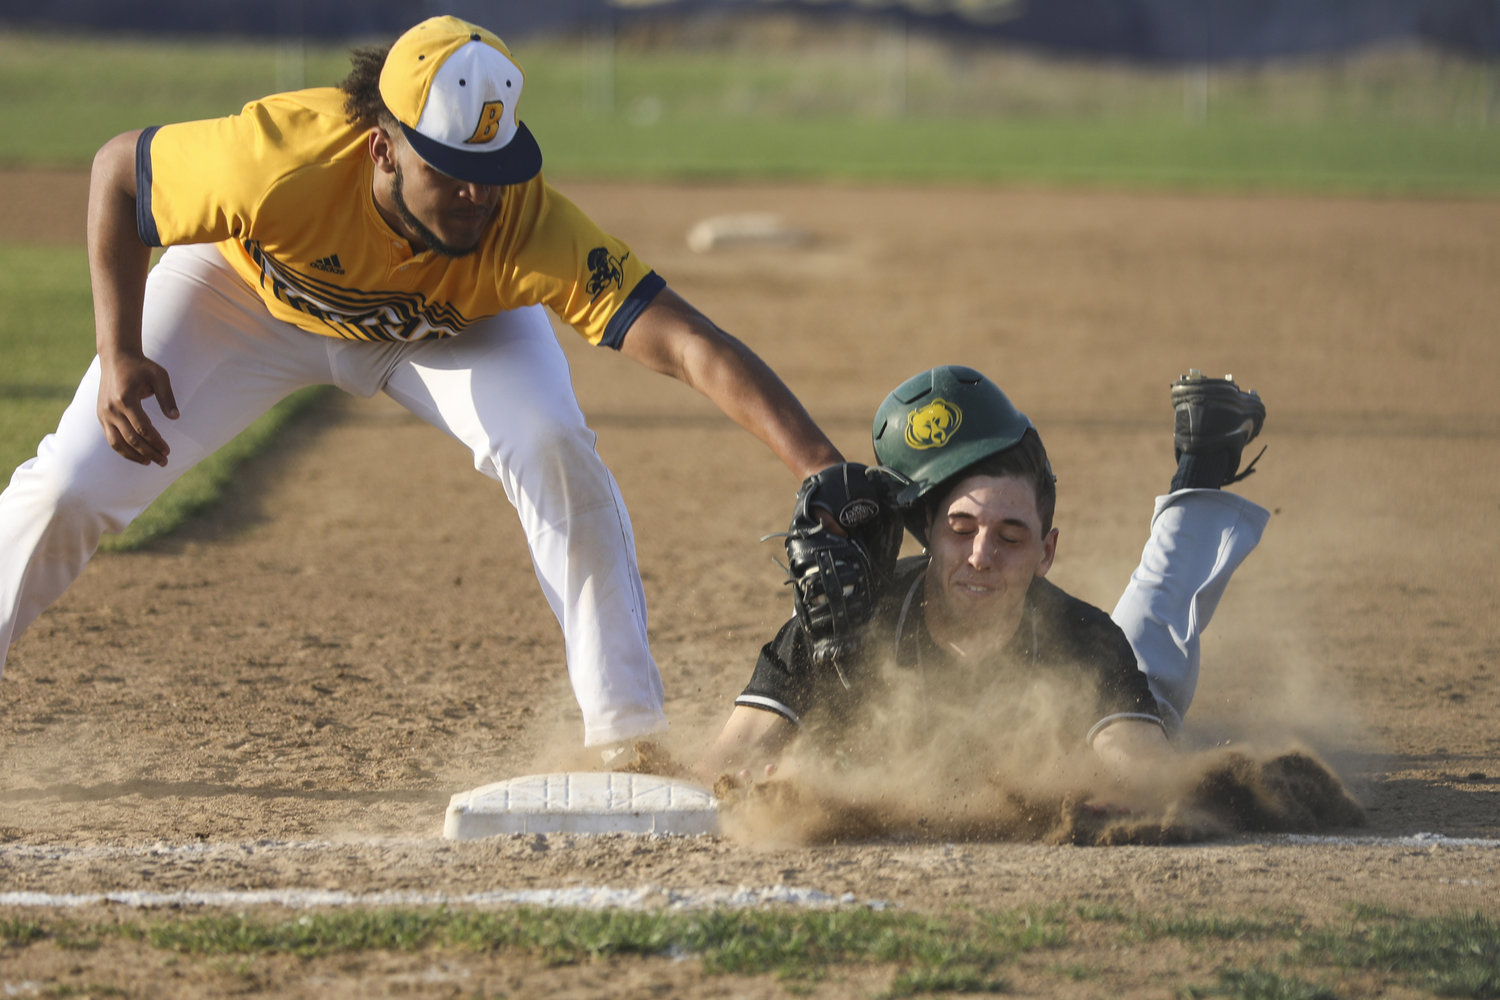 Battle's Jarel Hyler, left, attempts to tag Rock Bridge's Tony Pascucci during a game Tuesday at Battle High School in Columbia, Mo. the Spartans won the game 1-0 on a walk-off walk.